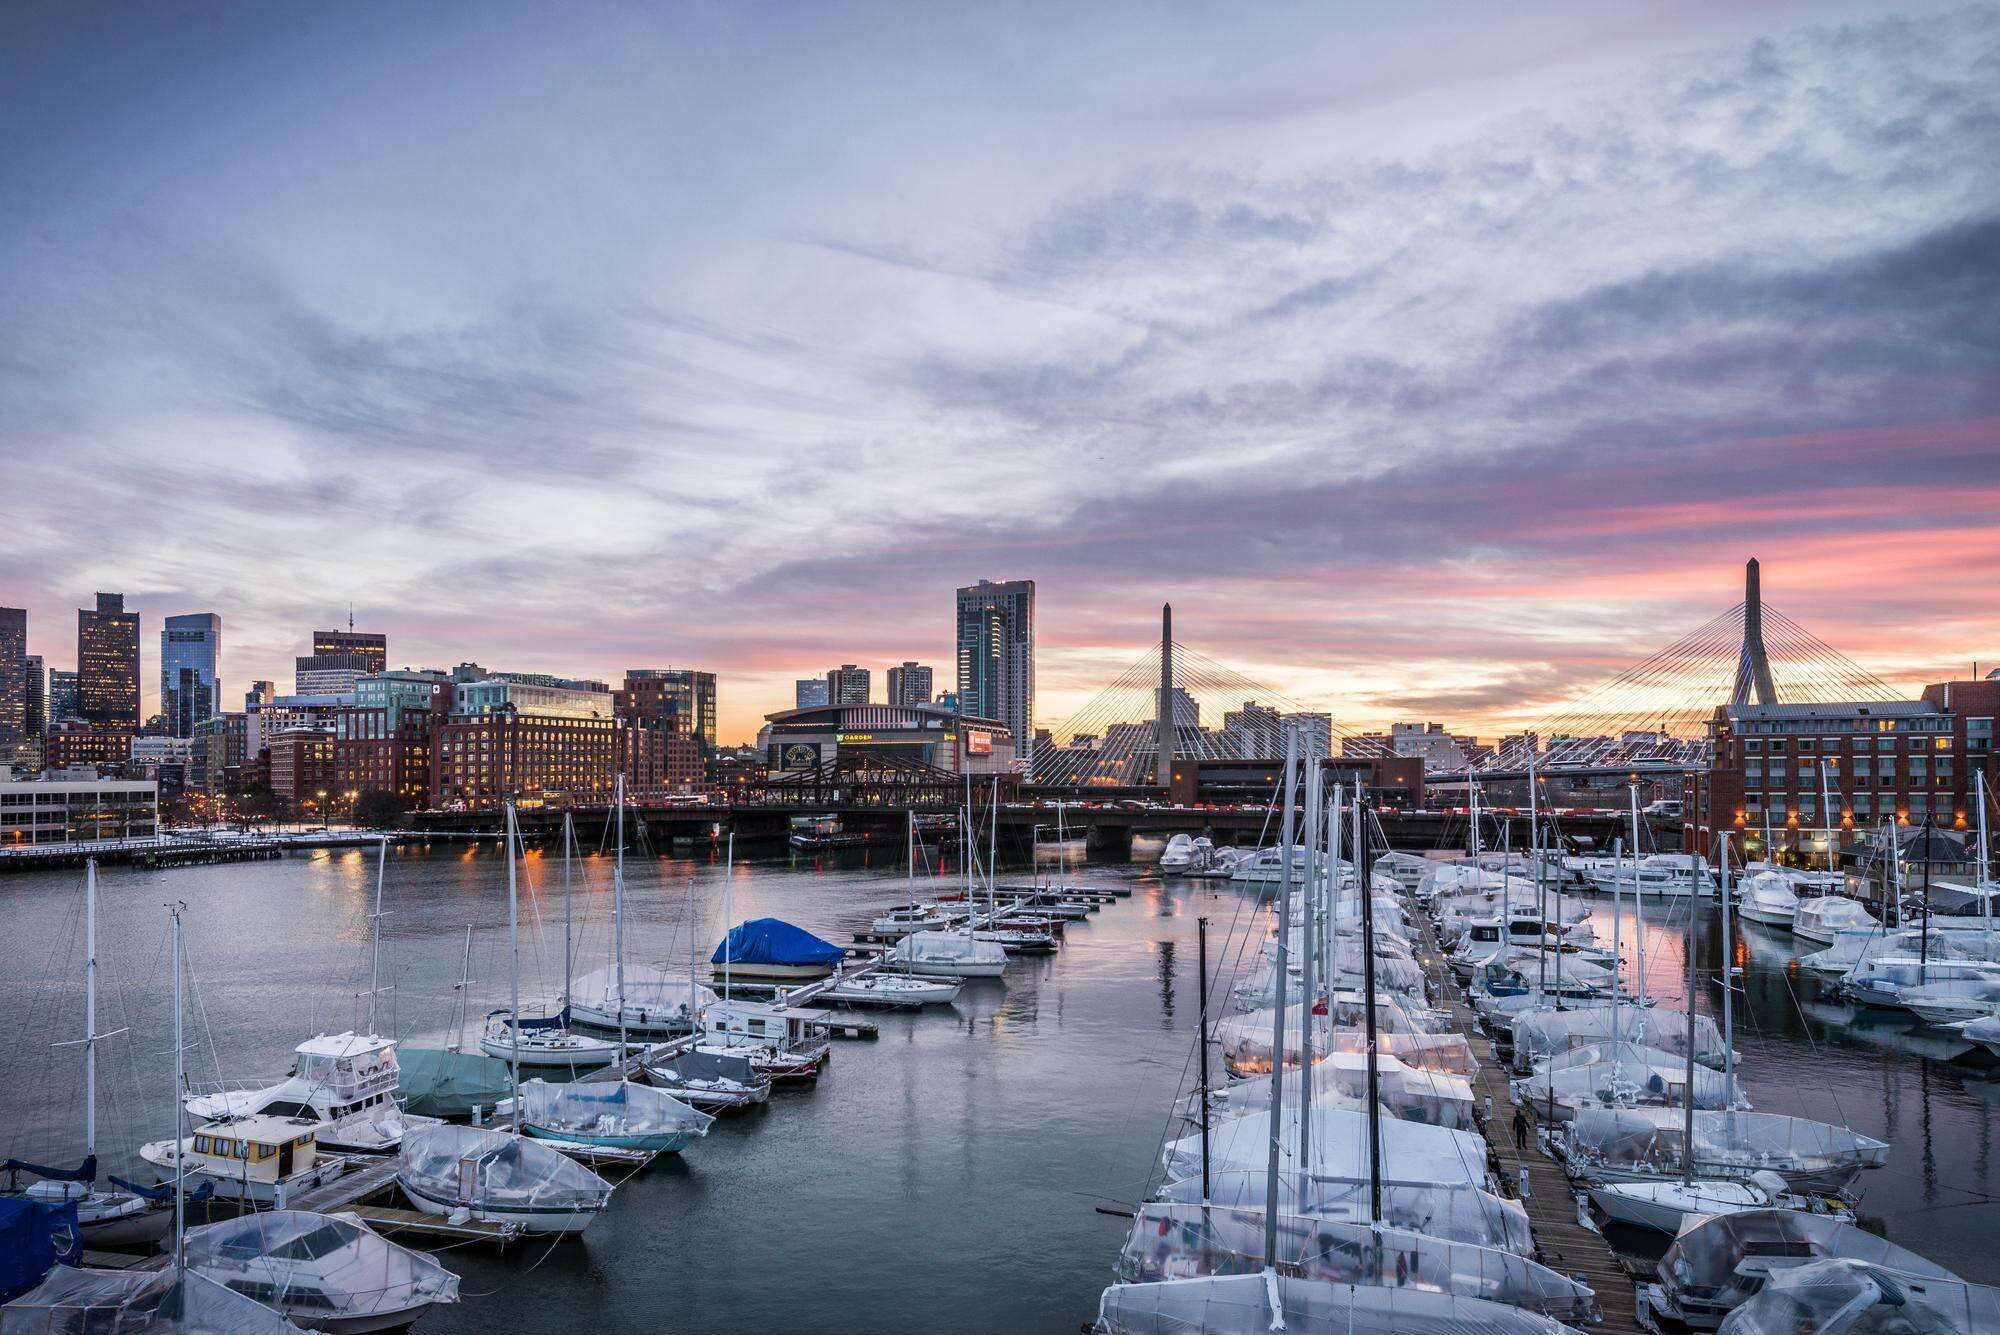 View of moored sailboats at the marina, with the Boston skyline in the background under a beautiful sunset sky